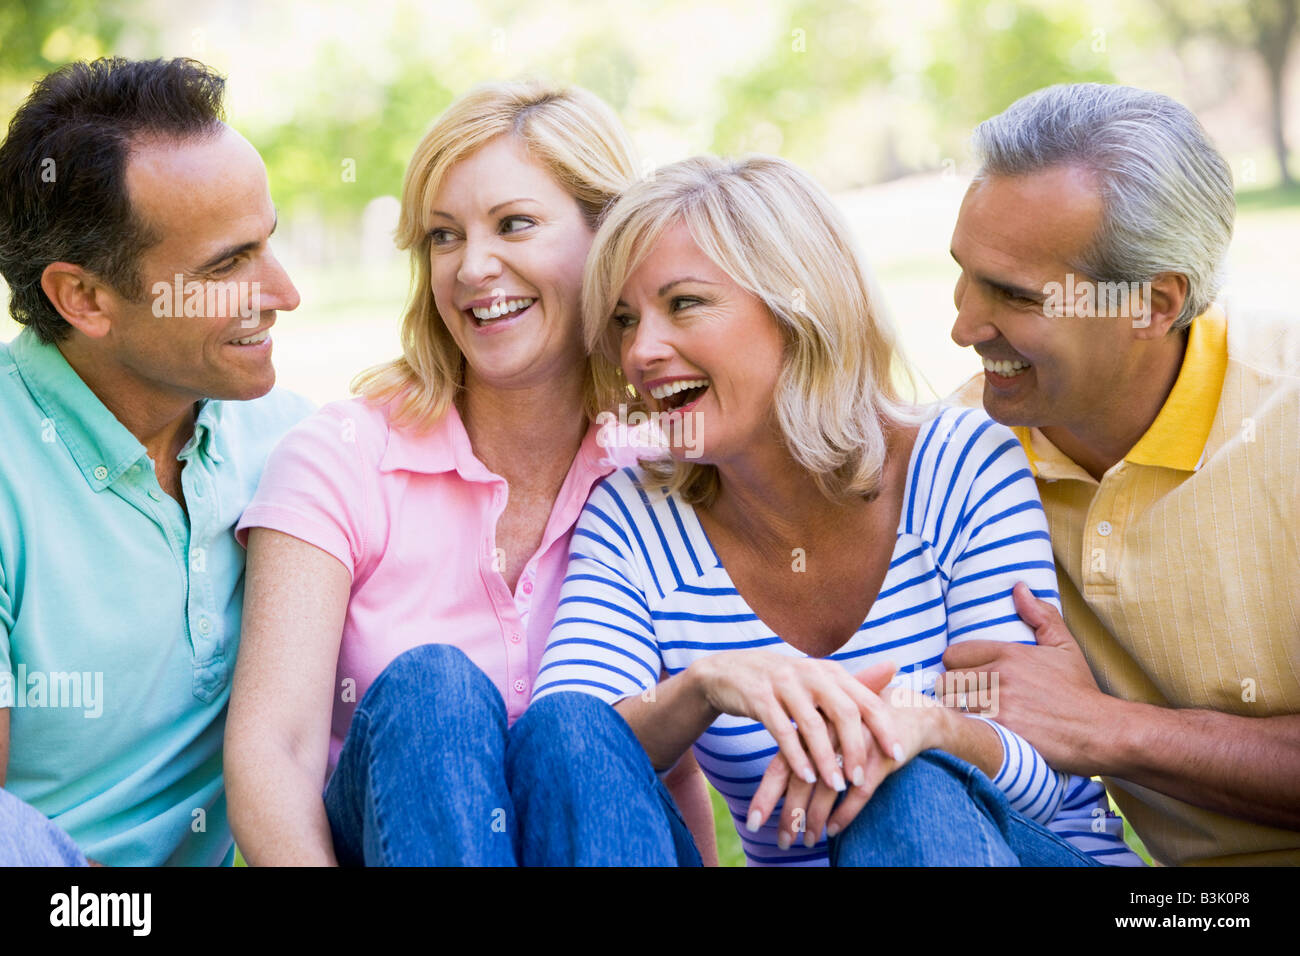 Two couples outdoors smiling - Stock Image